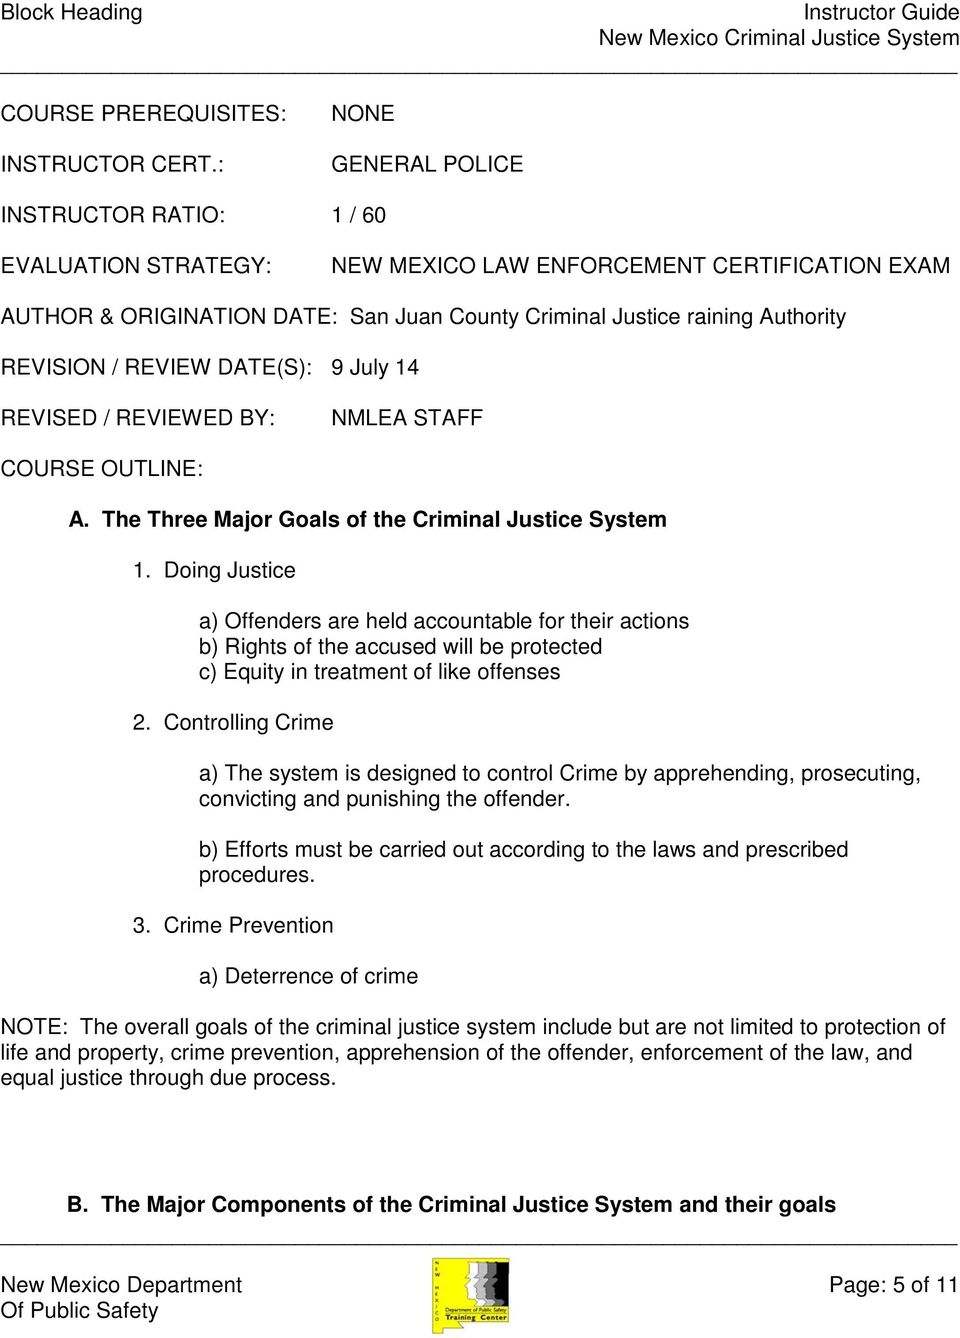 REVISION / REVIEW DATE(S): 9 July 14 REVISED / REVIEWED BY: NMLEA STAFF COURSE OUTLINE: A. The Three Major Goals of the Criminal Justice System 1.